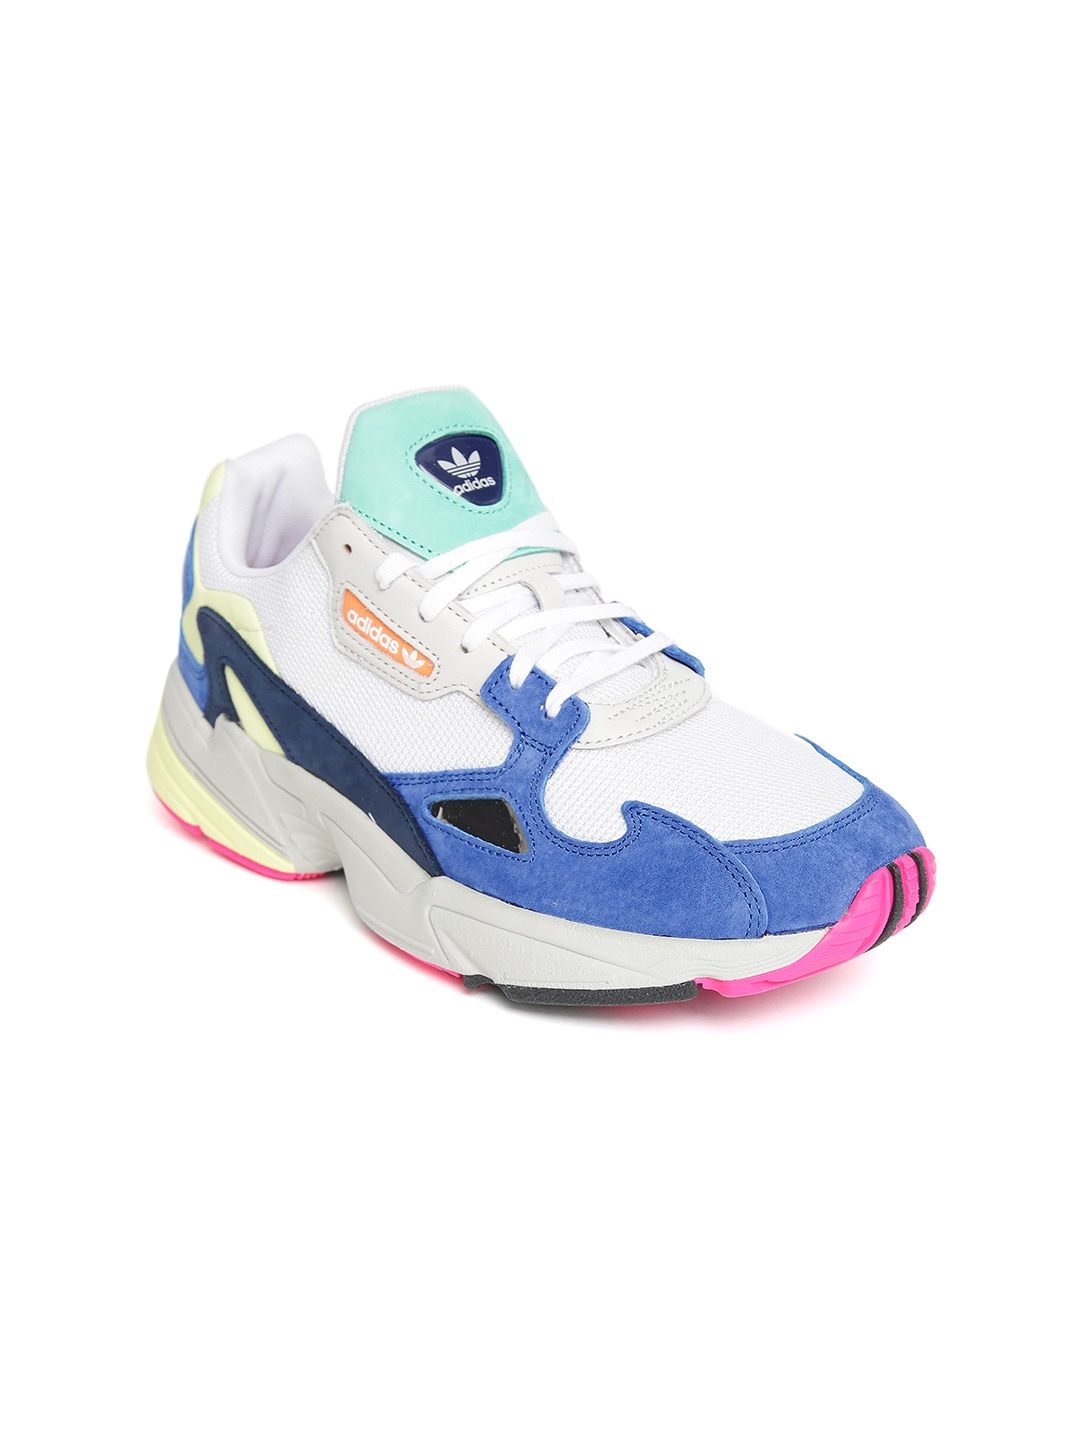 de13174404f54 Adidas Falcon - Buy Adidas Falcon online in India